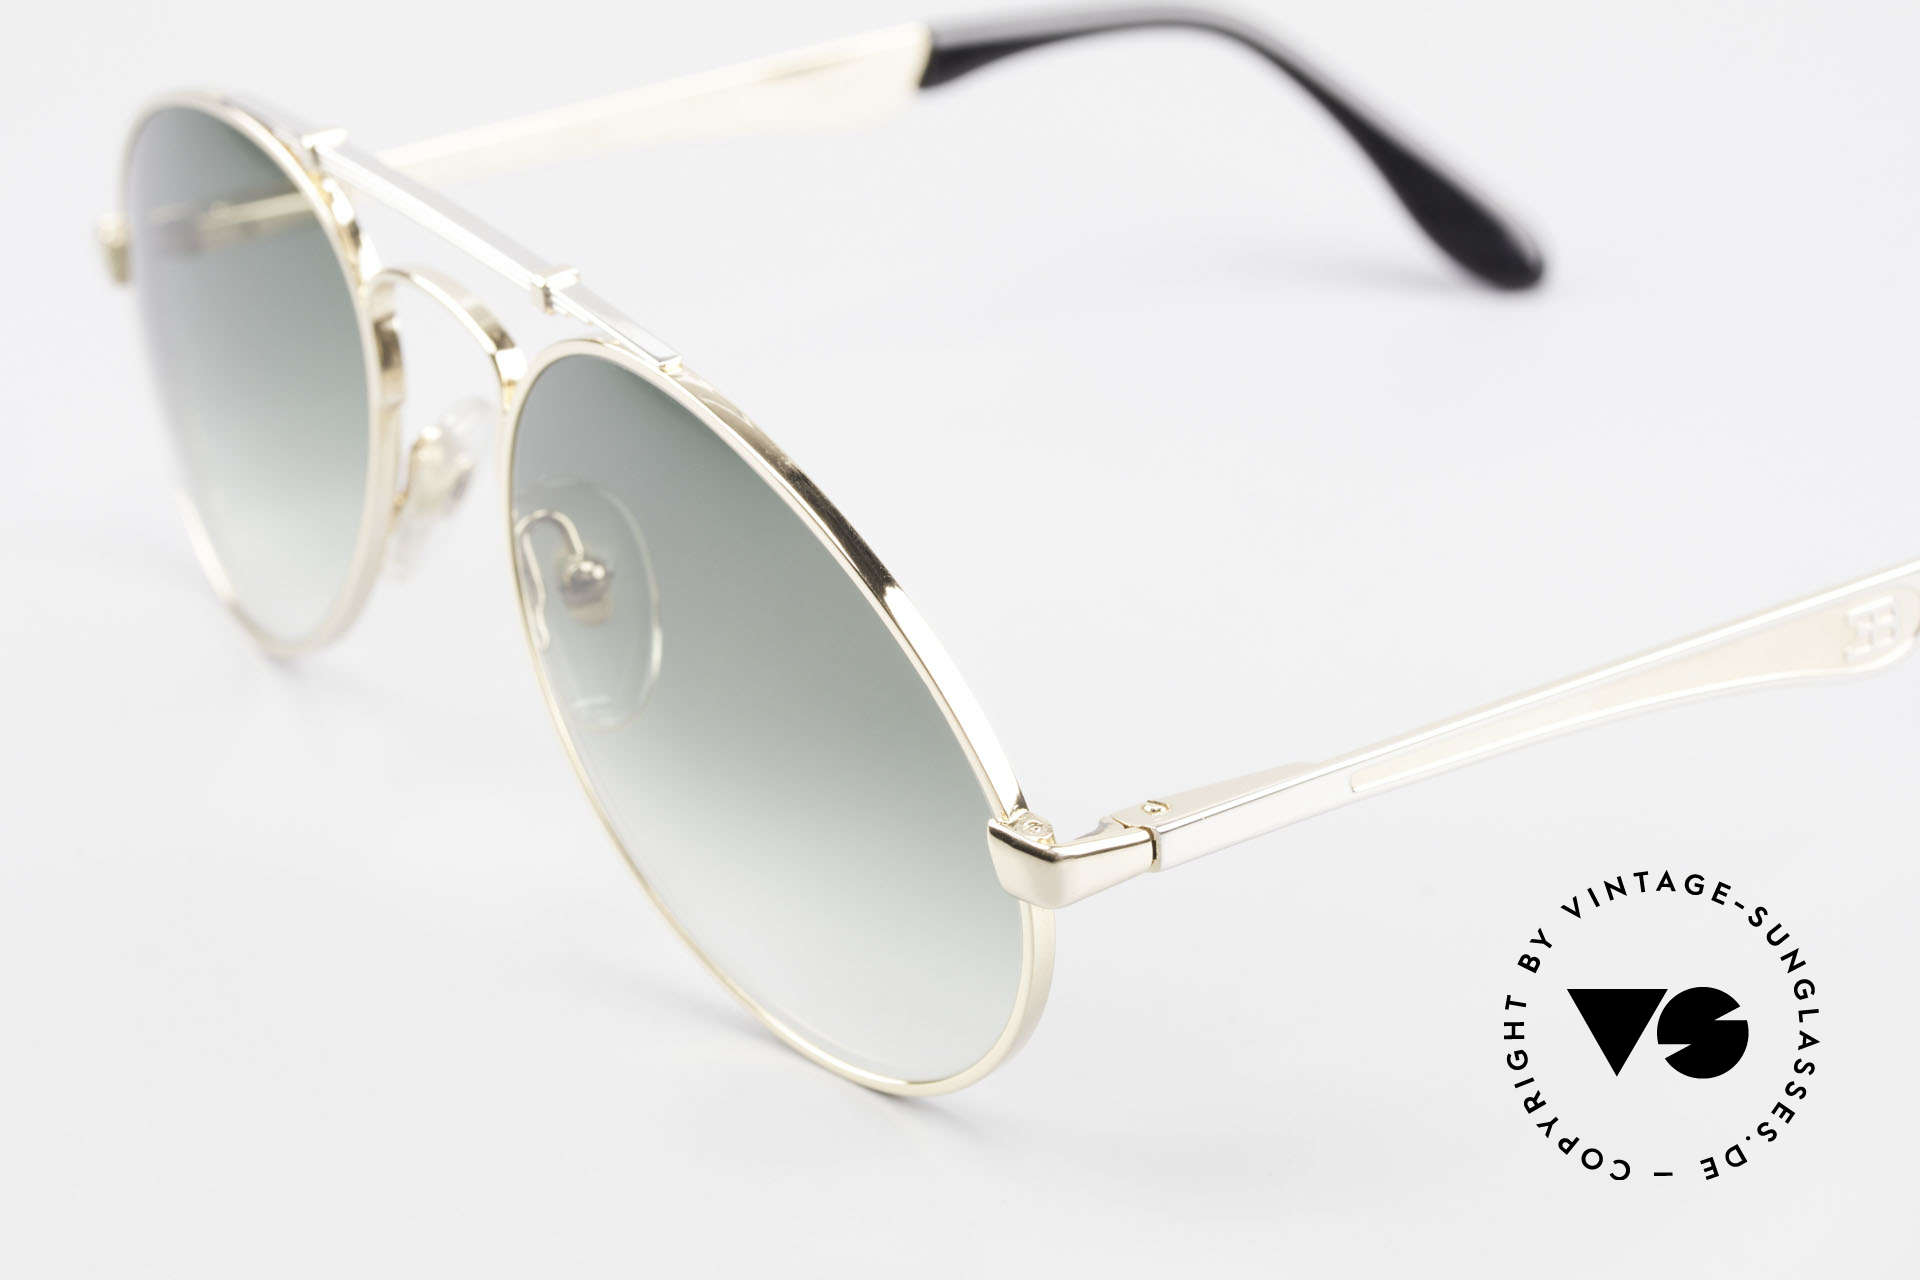 Bugatti 11908 Large 80's Luxury Sunglasses, a very noble unworn model (with orig. packing), Made for Men